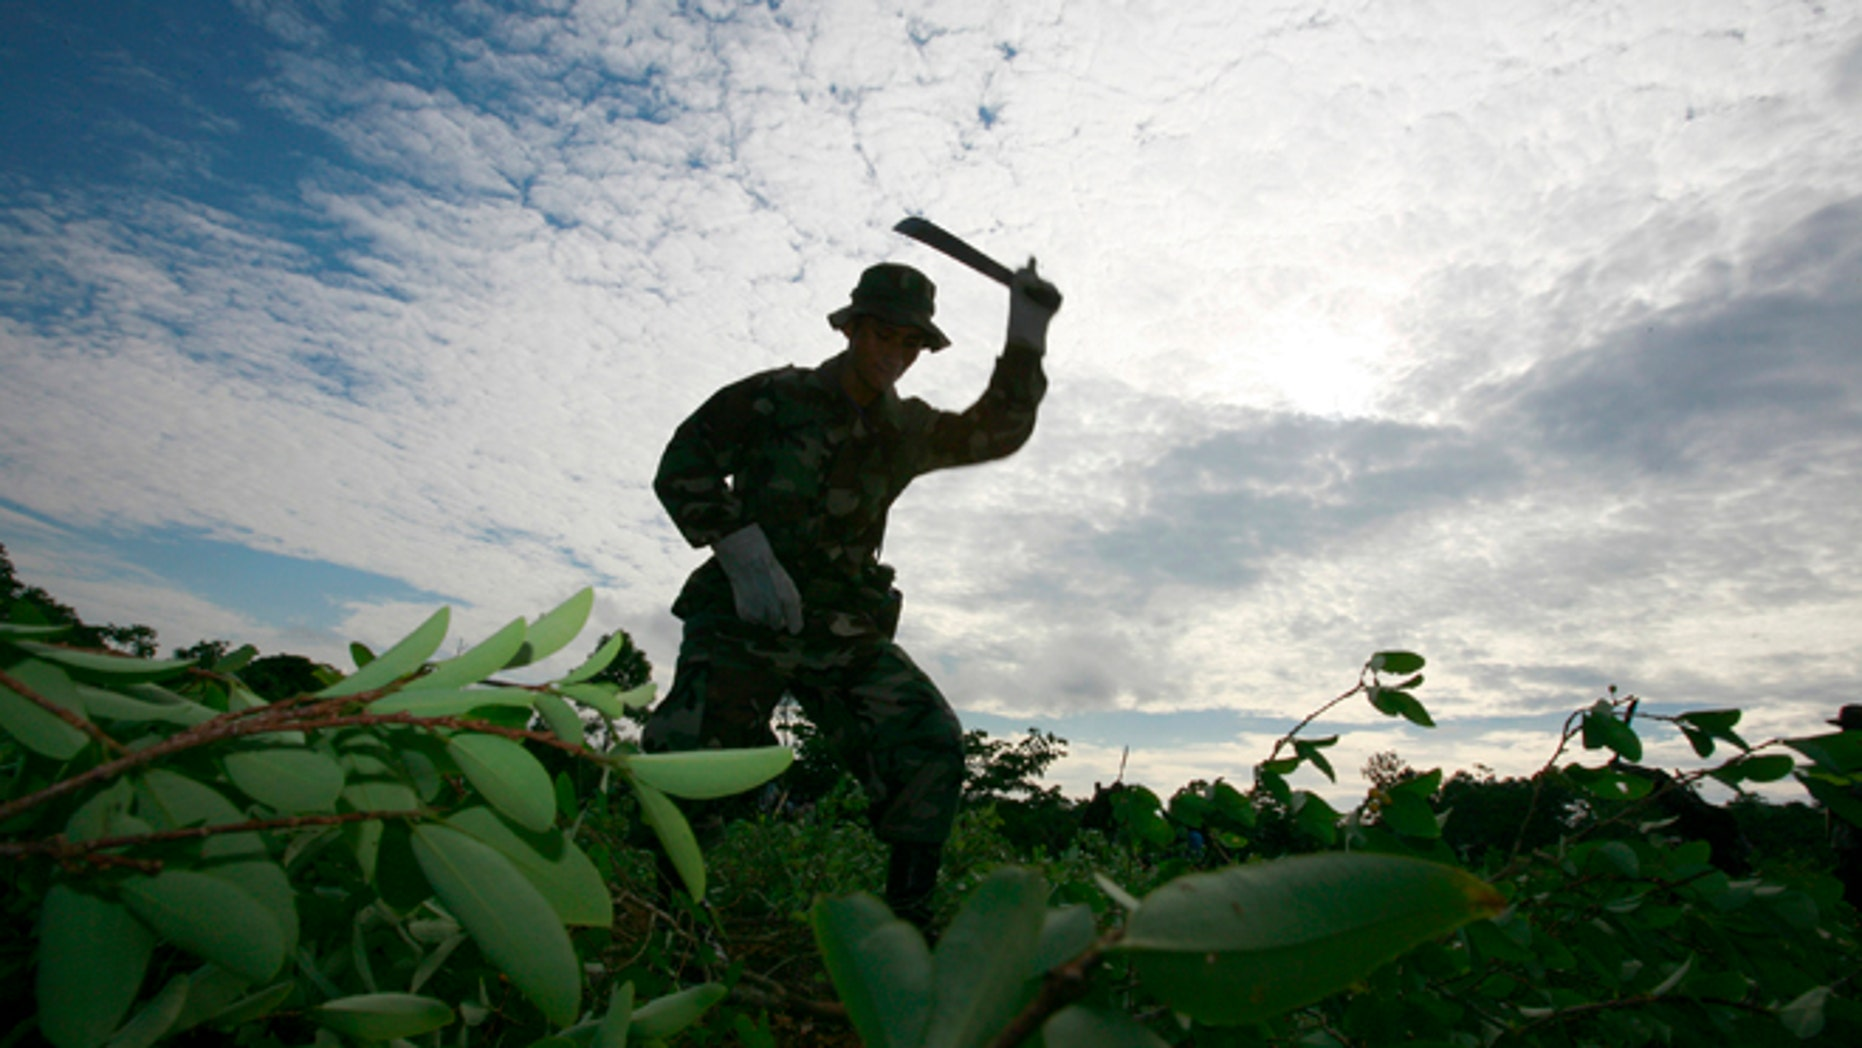 A member of Bolivian combined forces from the police and army chops down illegal coca plants near Chimore, some 373 miles southeast of La Paz.